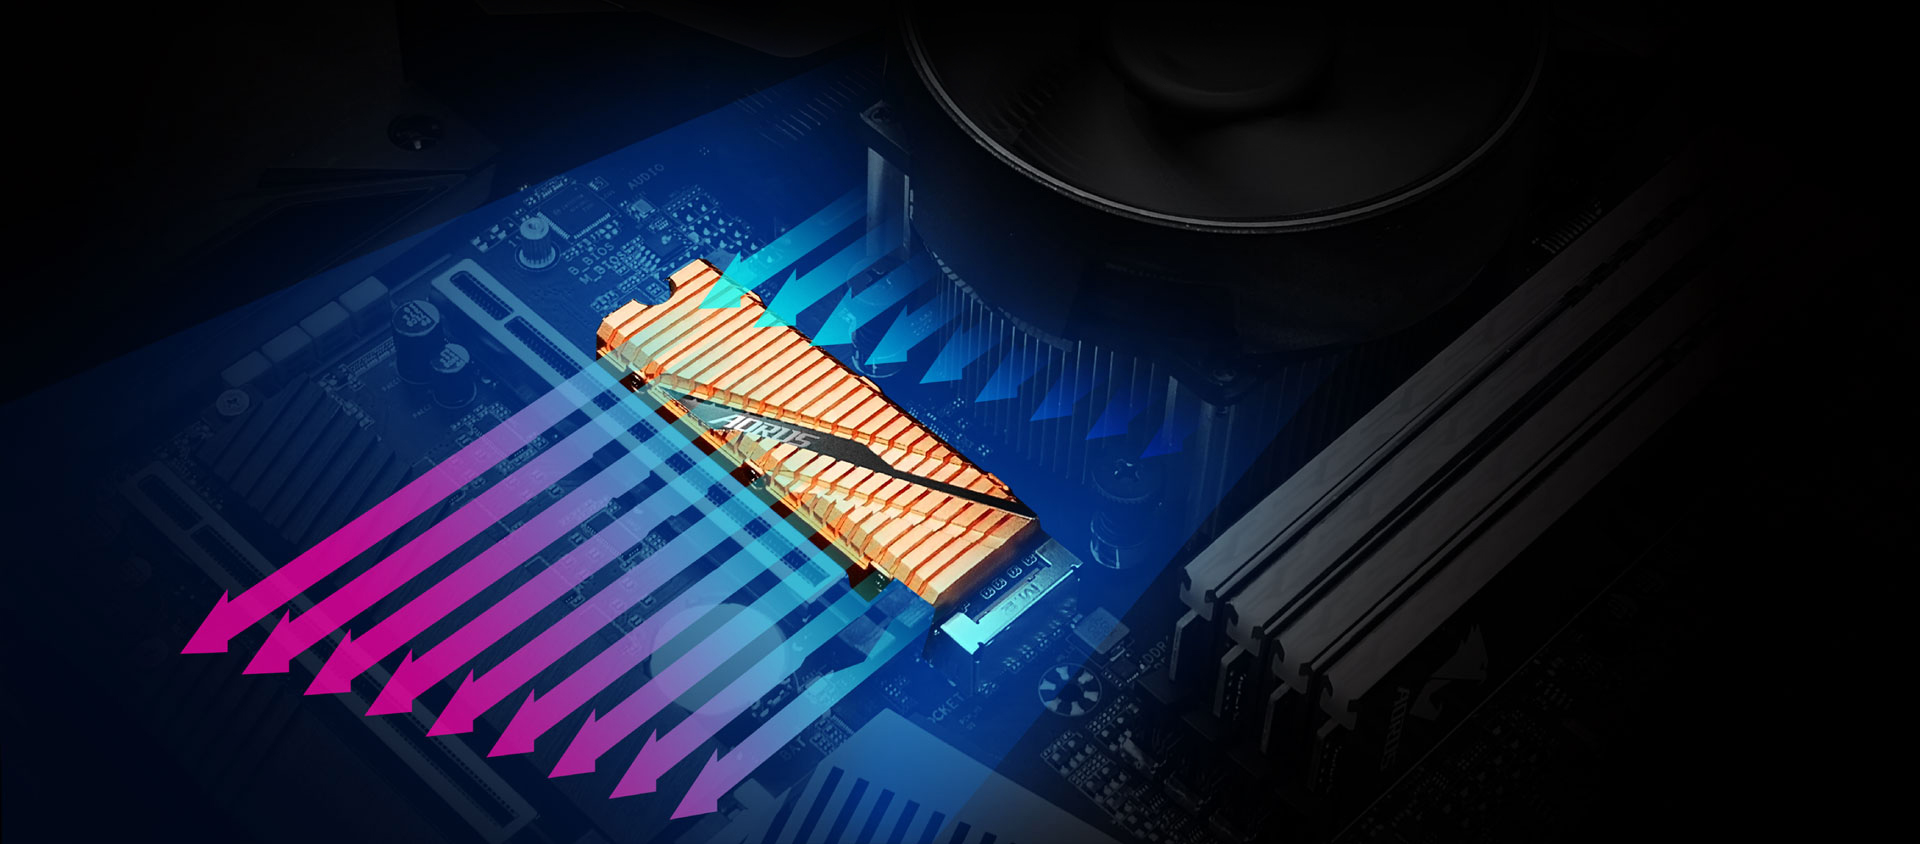 Closeup graphic of the GIGABYTE AORUS SSD's internal cooling system